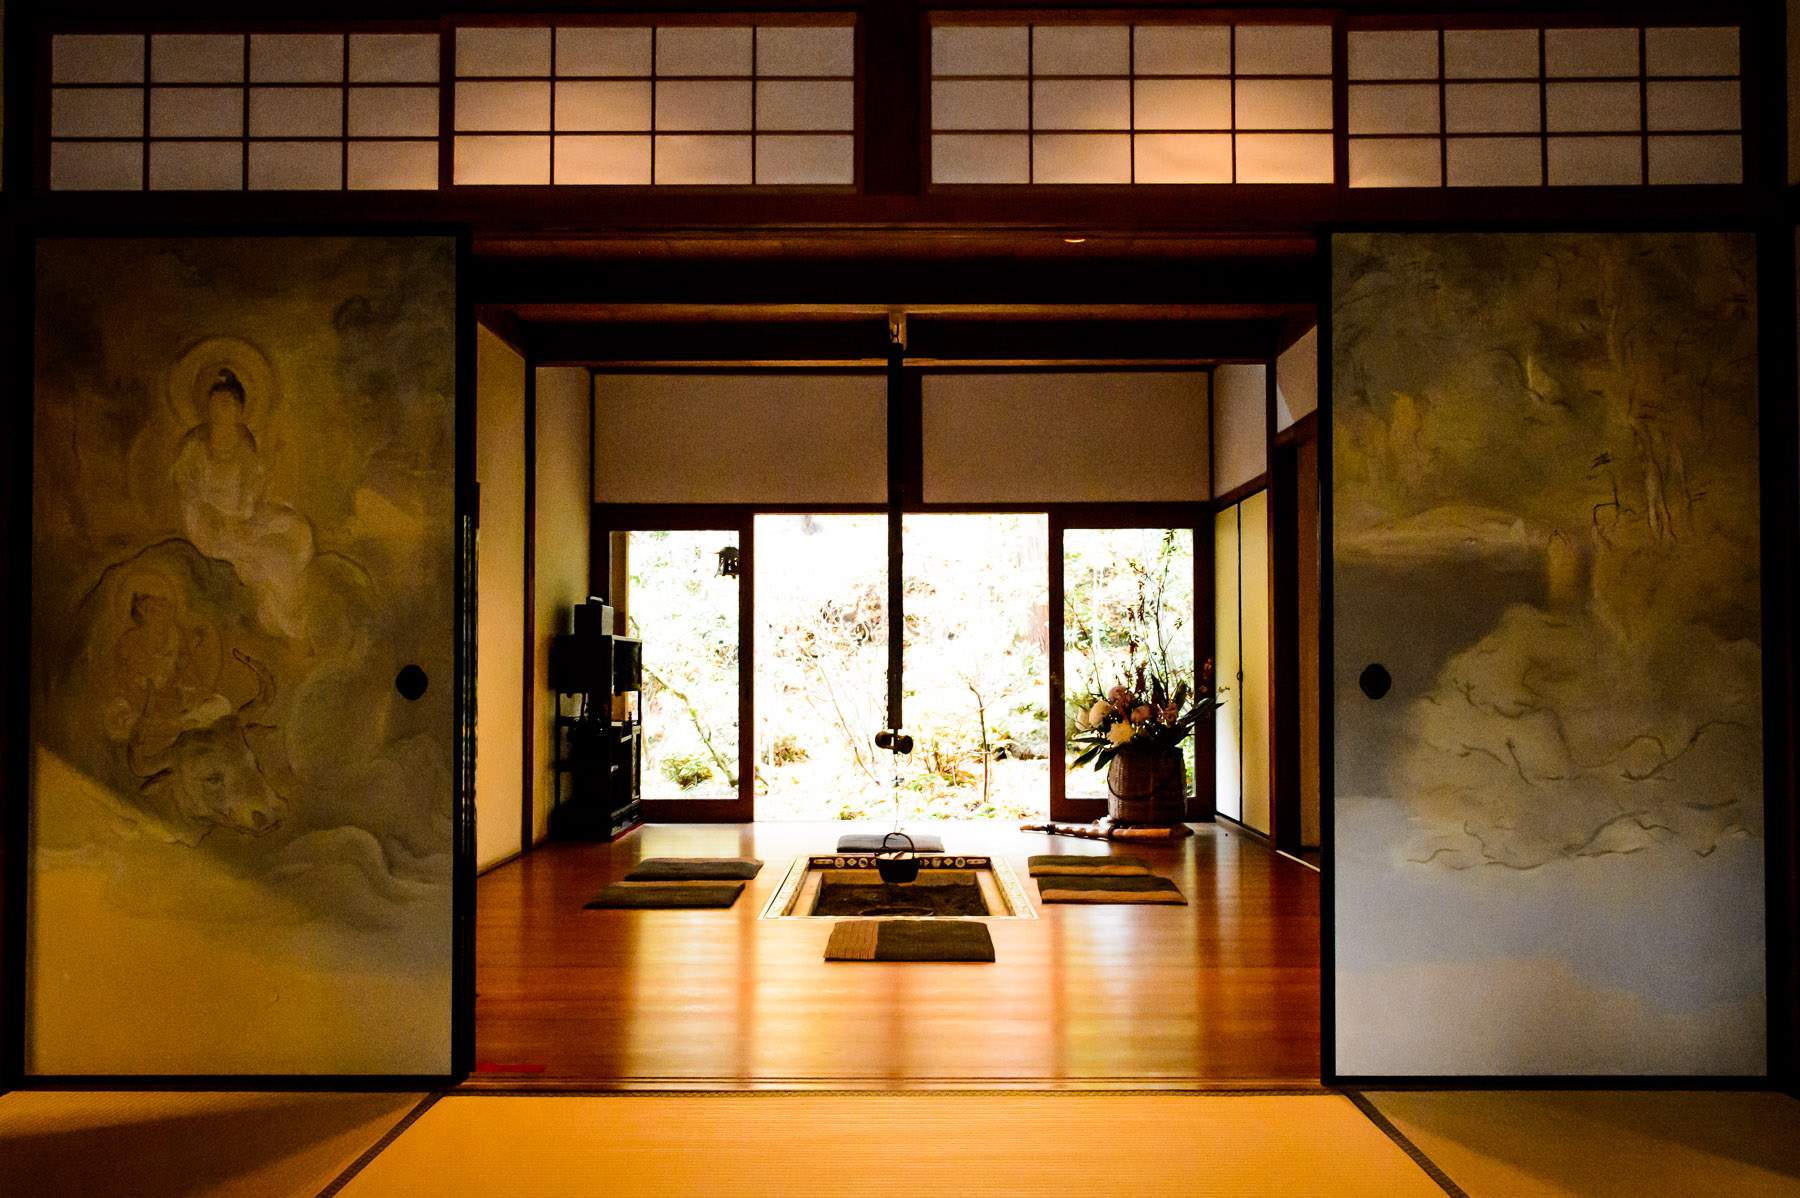 Japanese tea house interior - Tea Room With In Floor Hibachi Housen In Temple